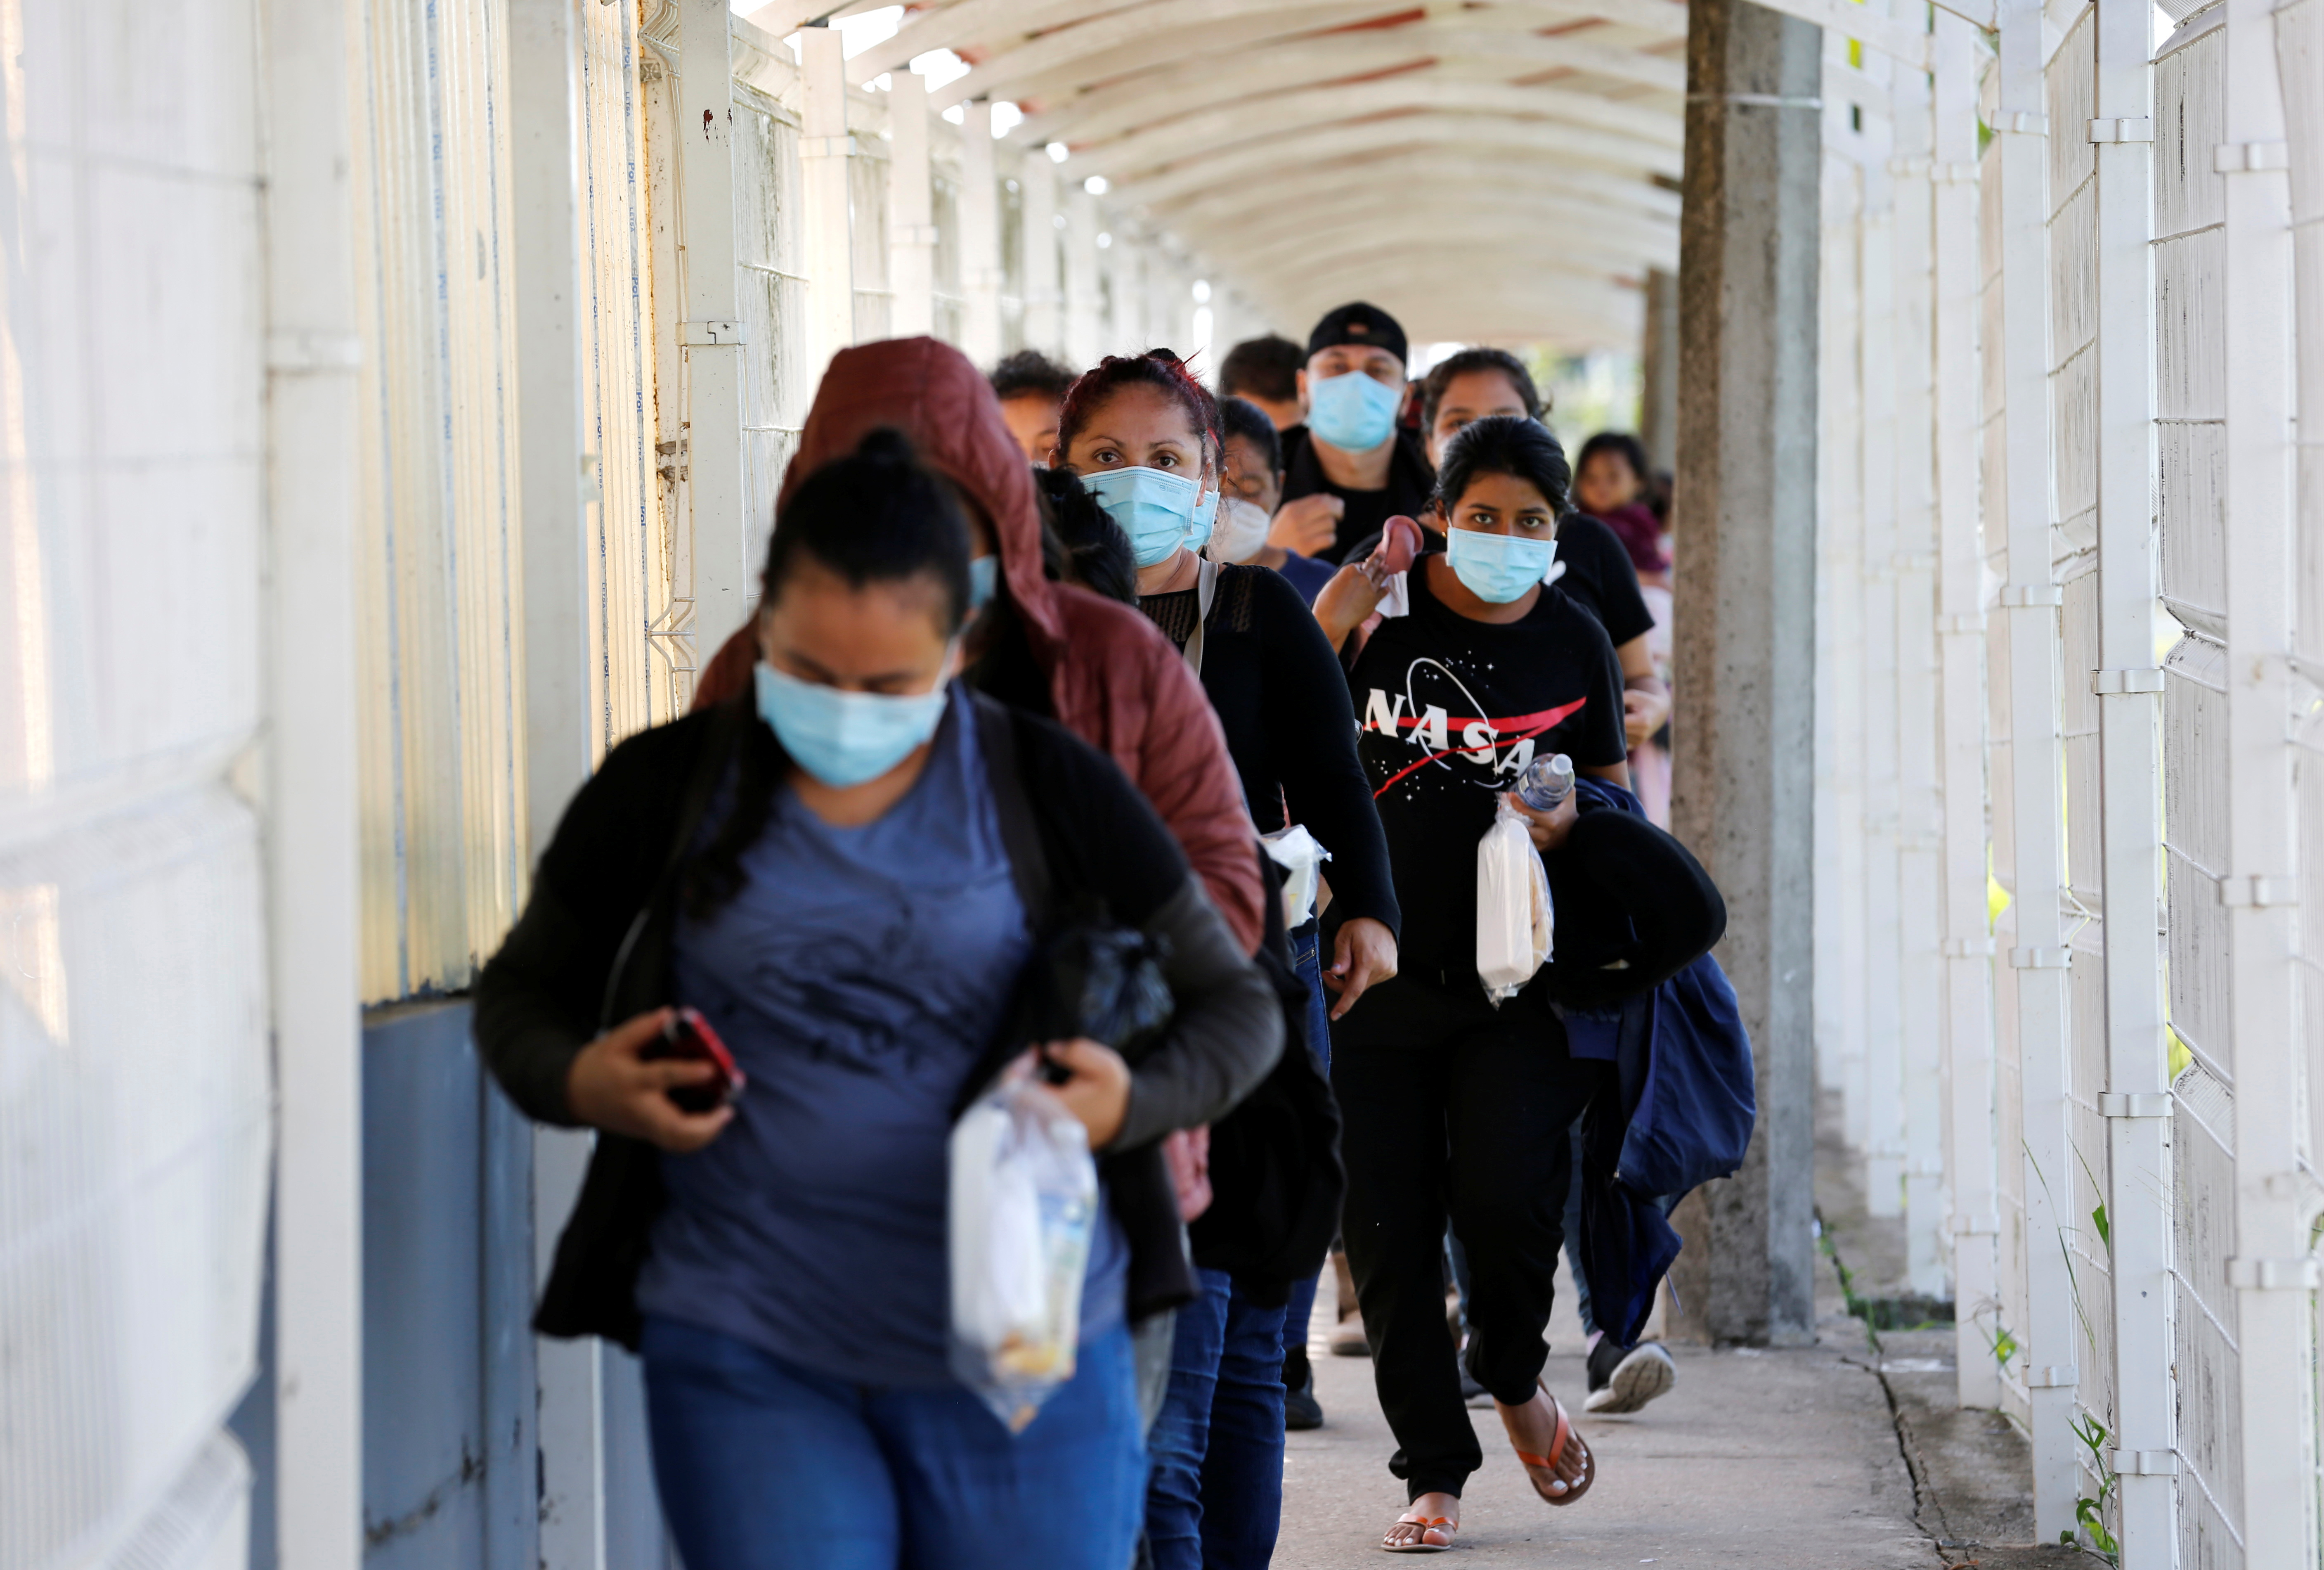 Central American migrants cross the border between Mexico and Guatemala, after being expelled by U.S. and Mexican officials, in El Ceibo, Guatemala August 15, 2021. Picture taken August 15, 2021. REUTERS/Luis Echeverria